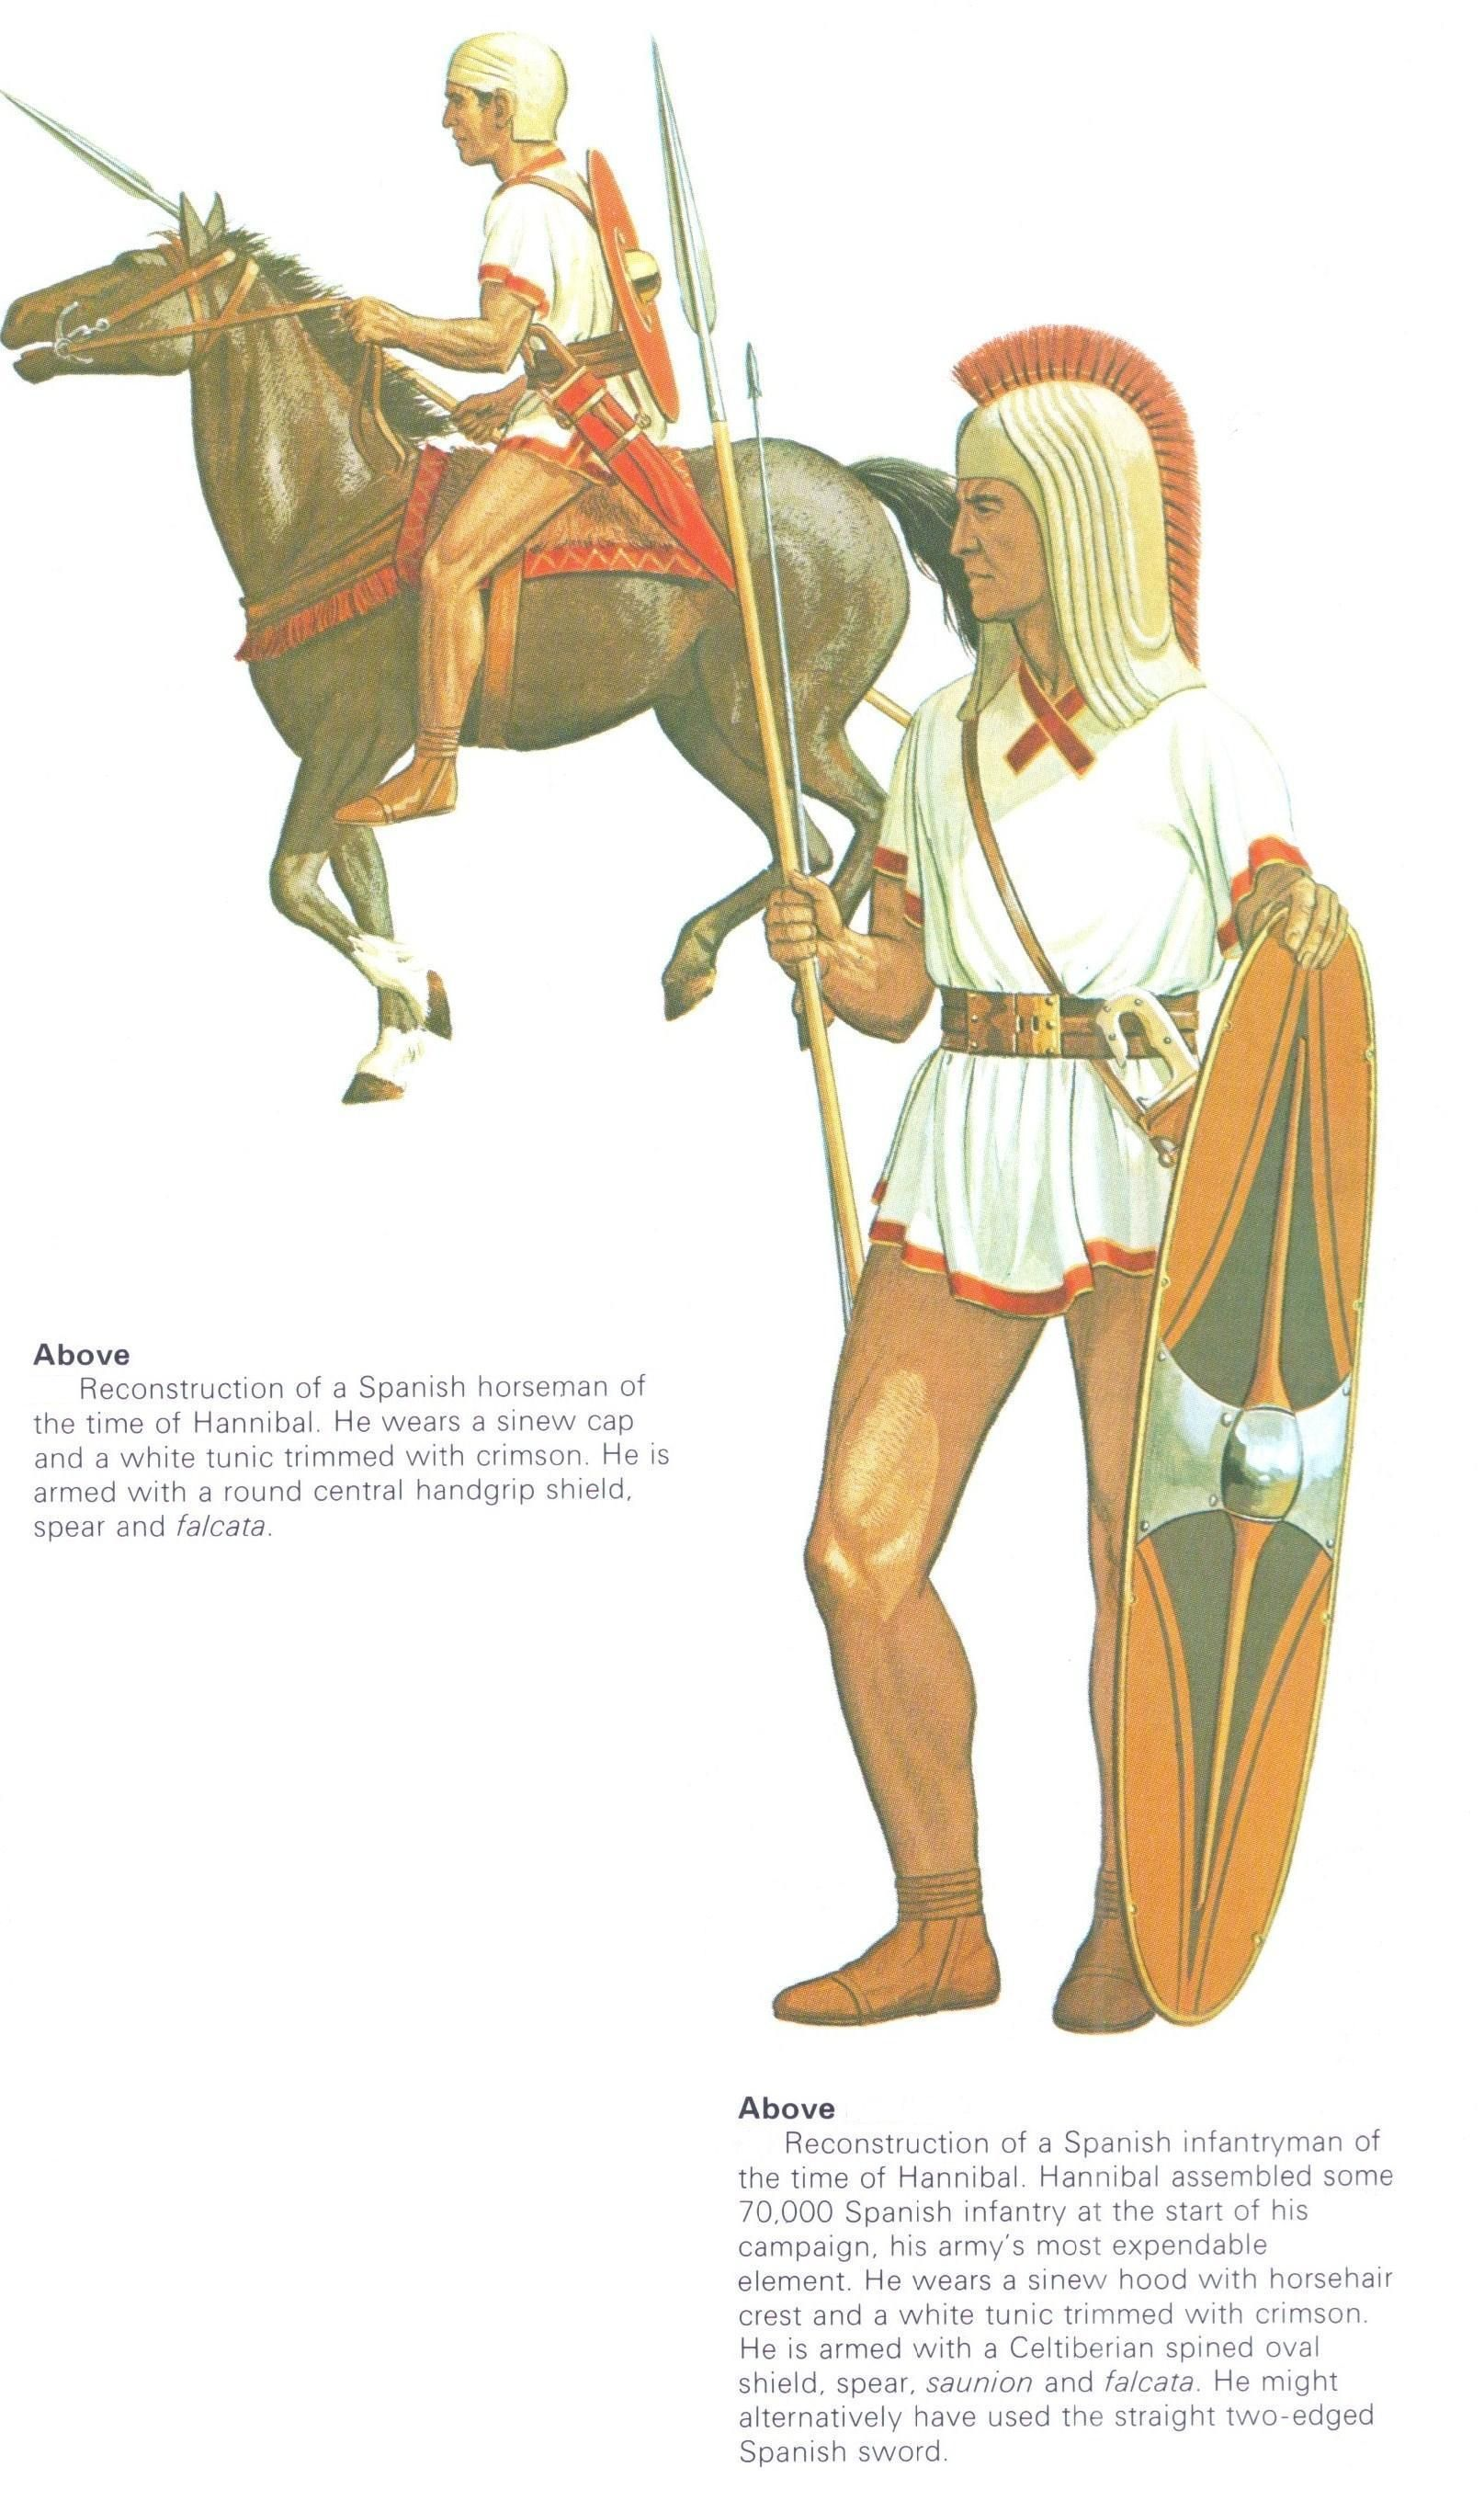 Spanish Horseman Infantryman Of Hannibal S Army Circa 200 B C Peter Connolly Cavalry User Aethon Legione Romana